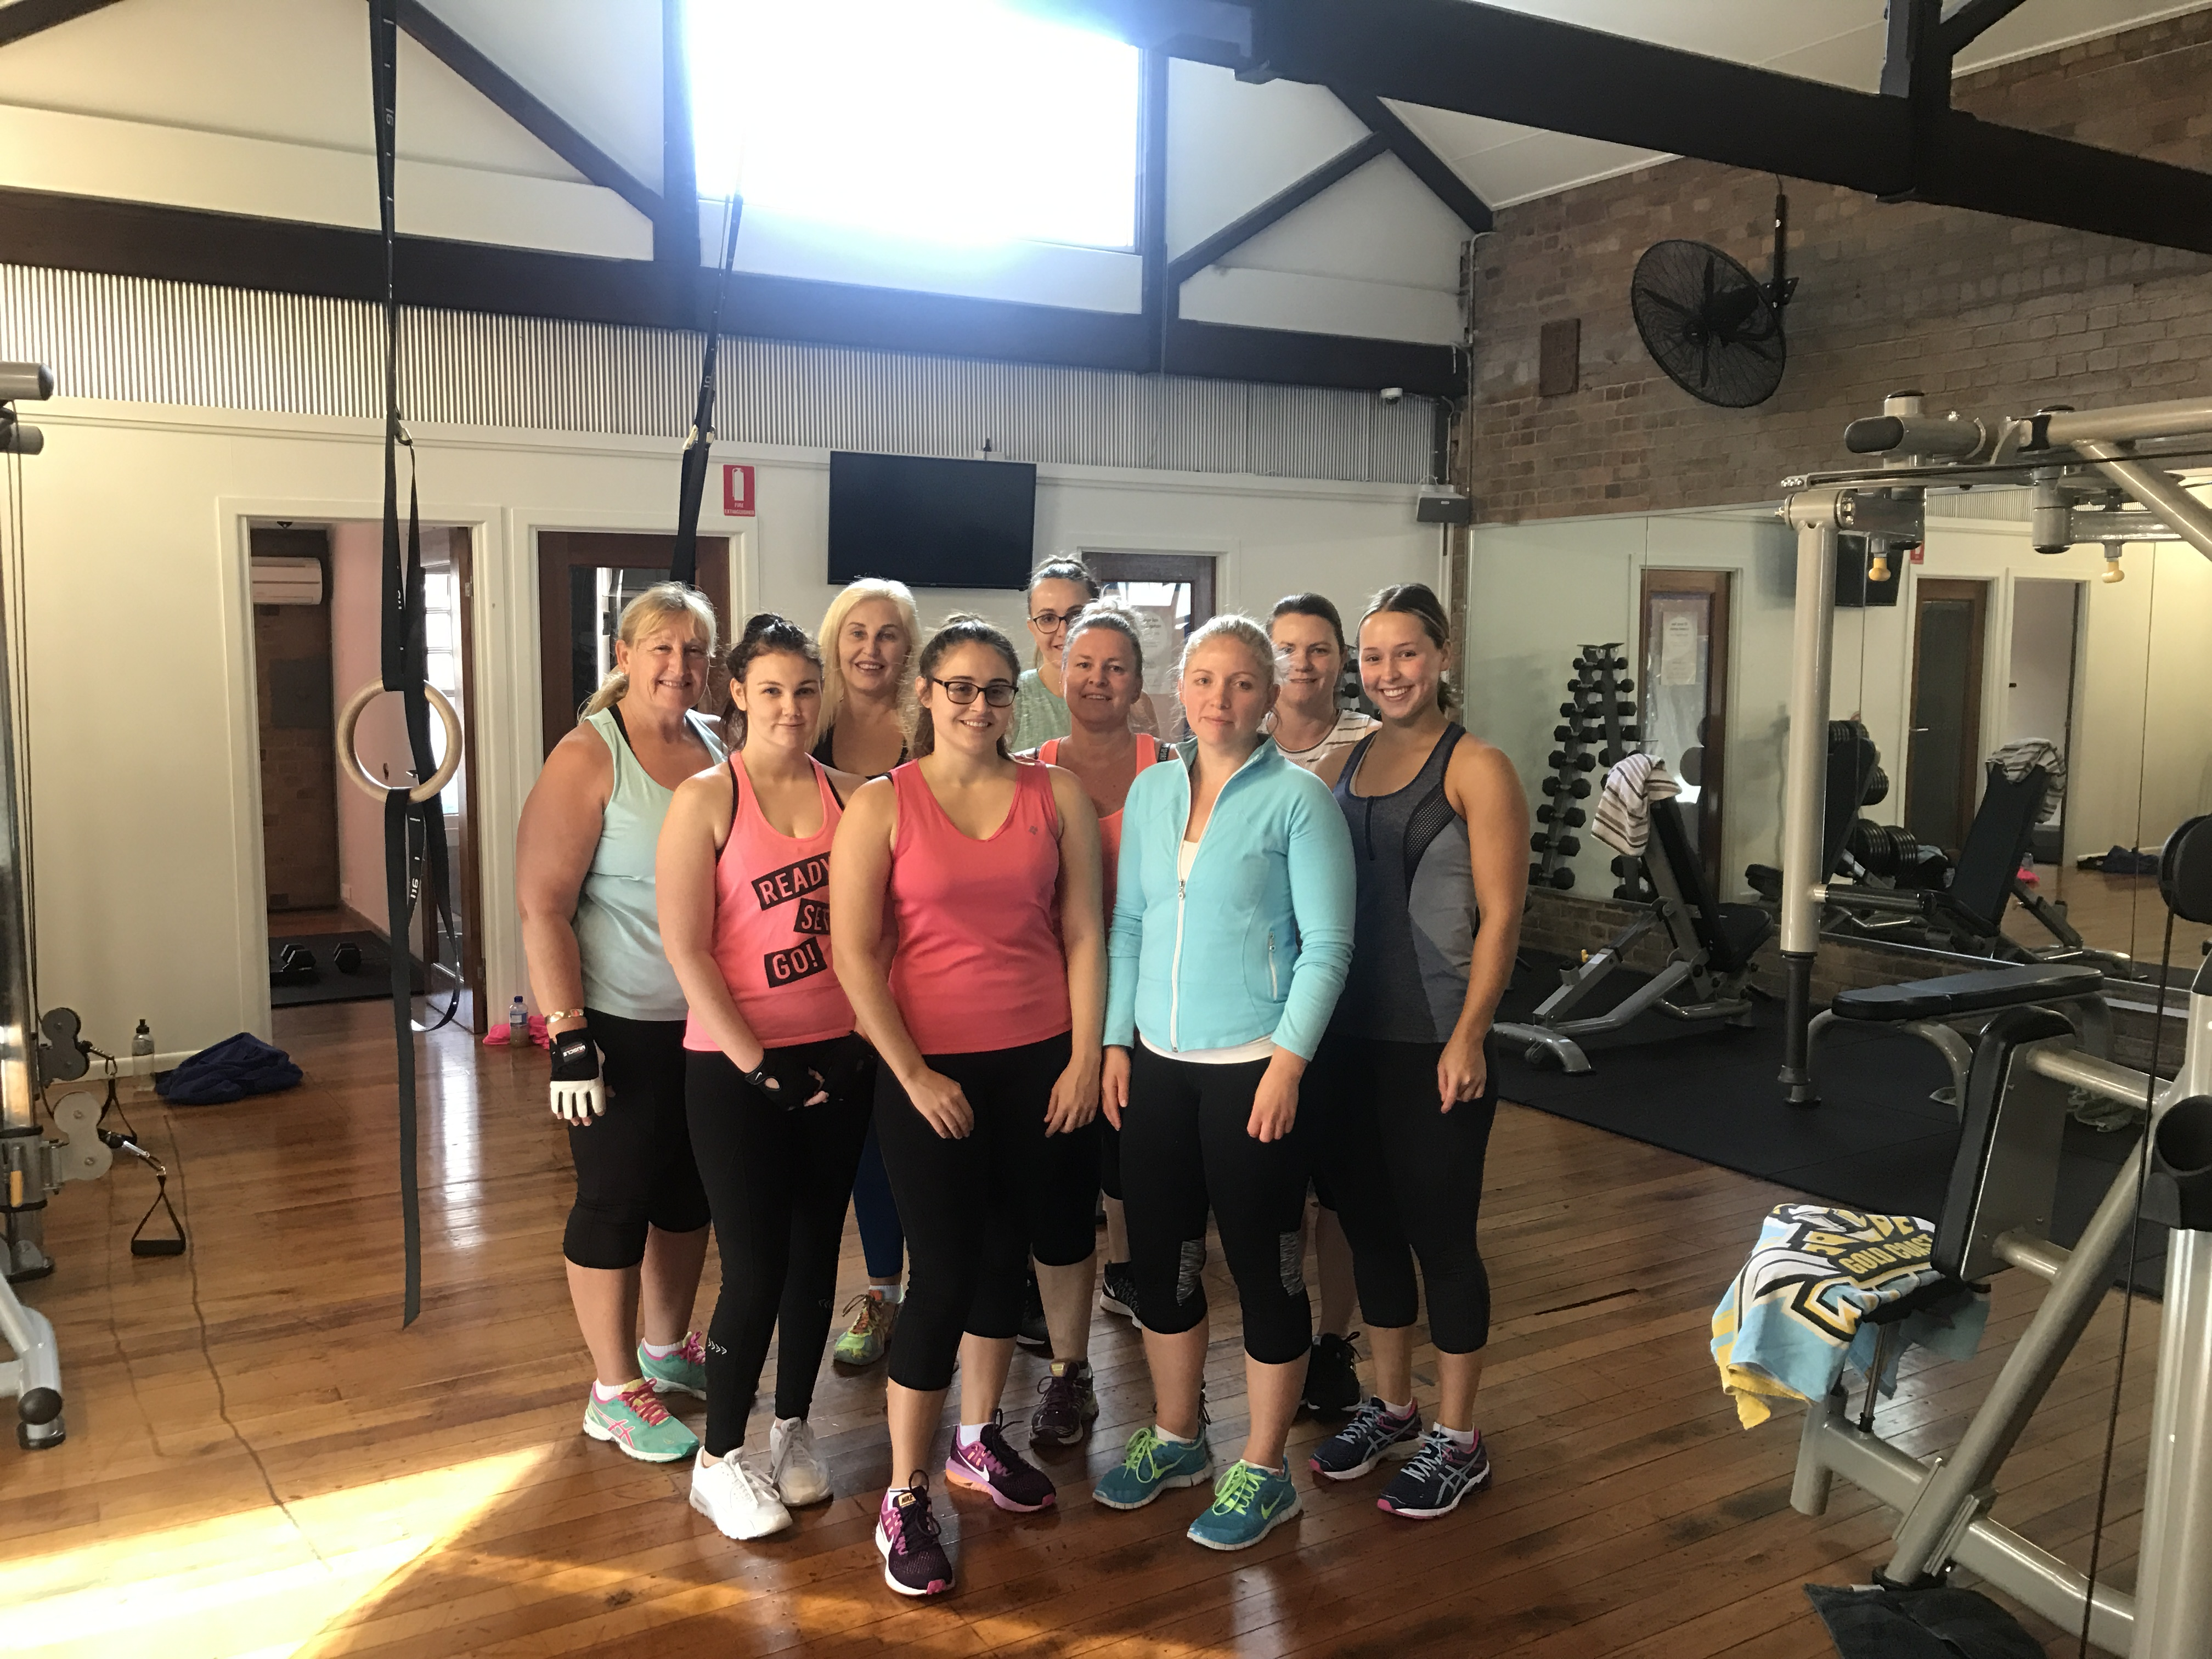 Lose weight, tone up or get fit as a team